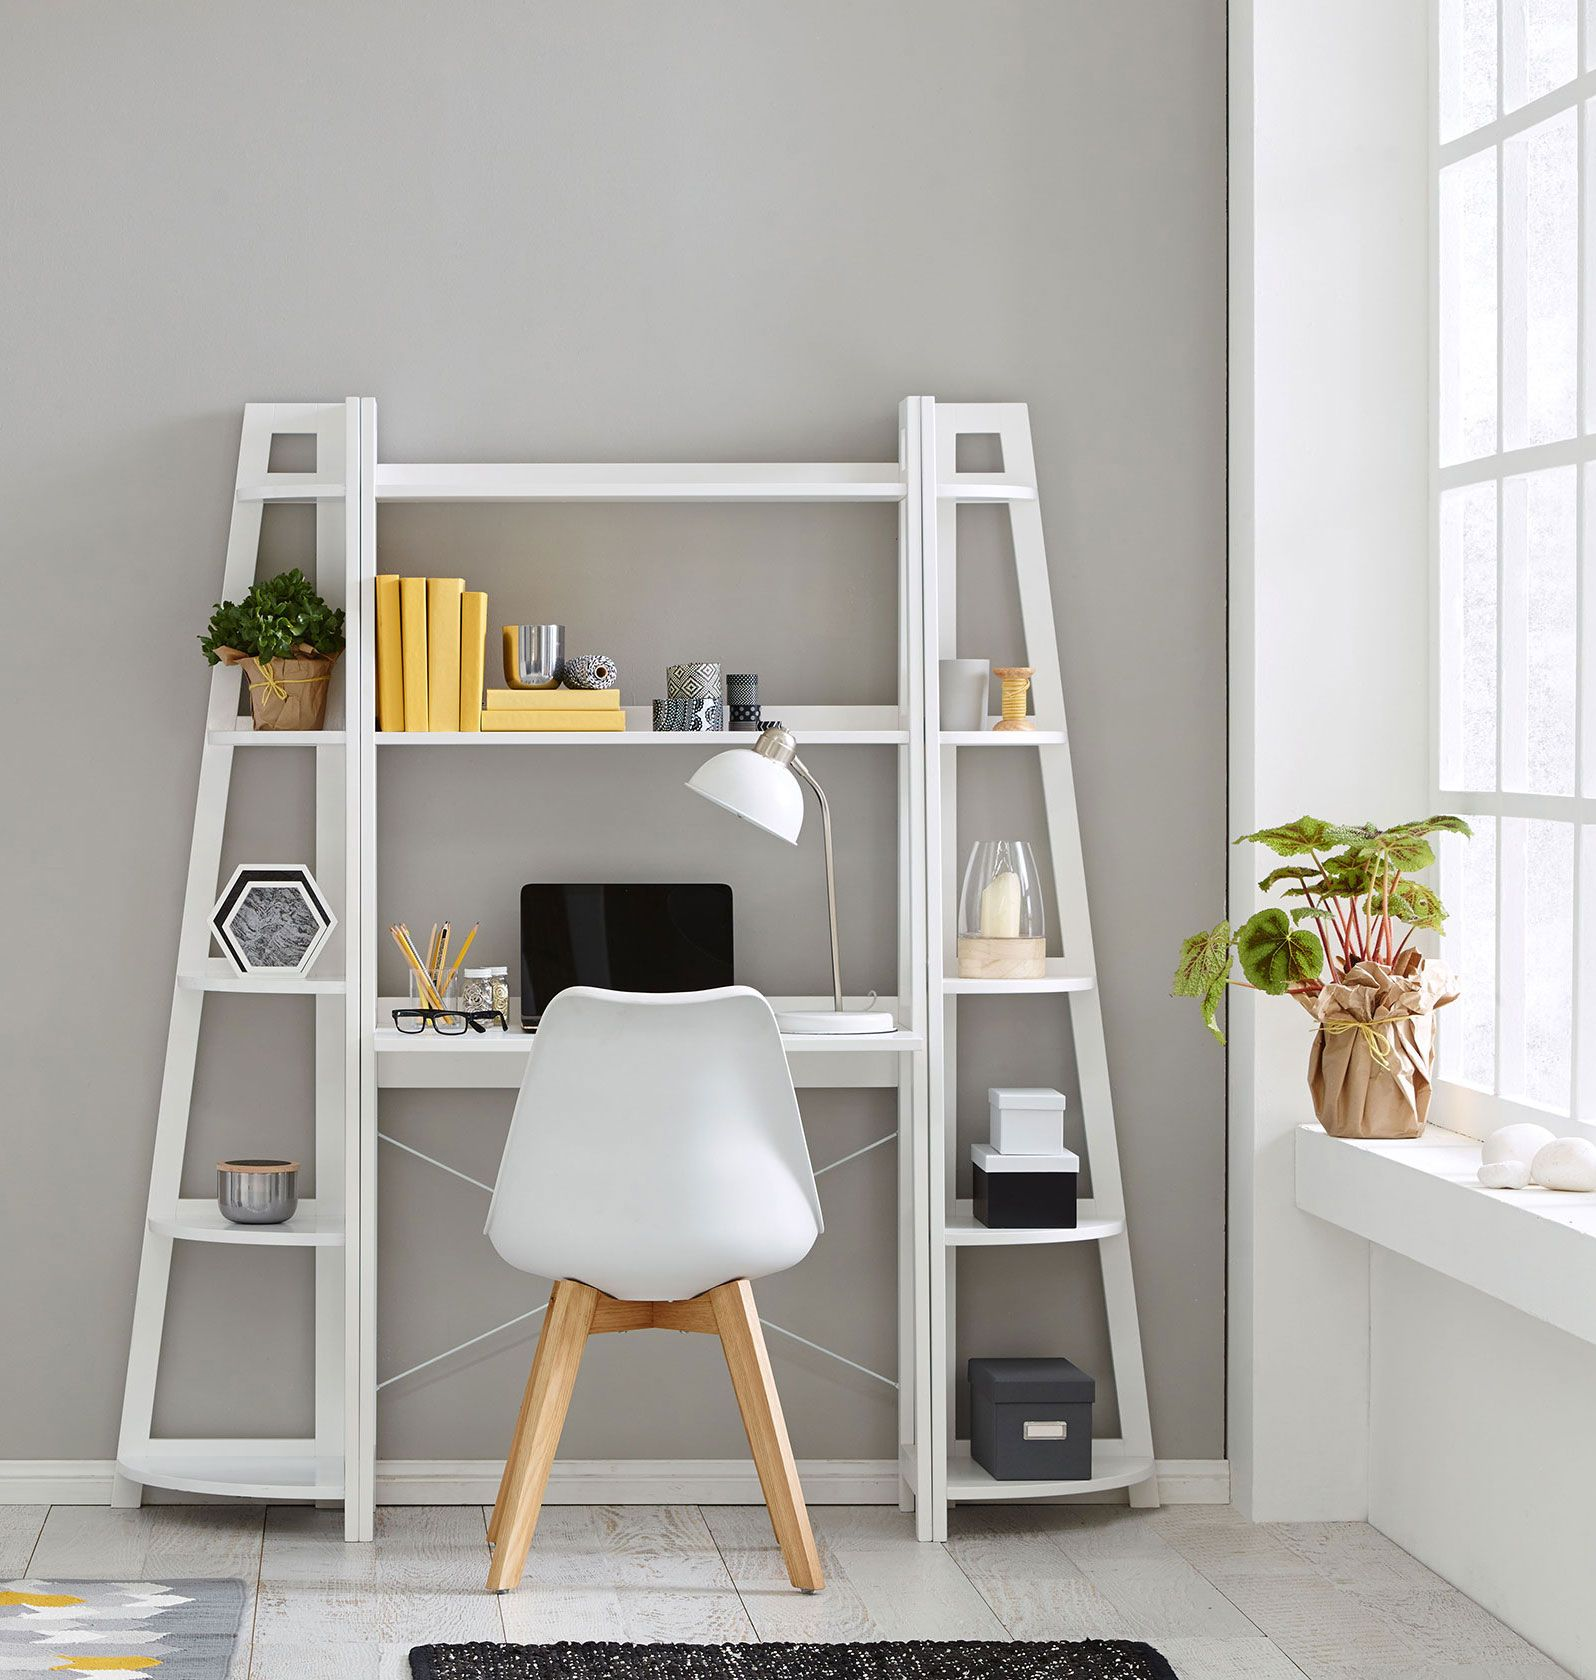 Home Office Furniture Solutions Style Property Mesmerizing Domayne's Home Office Solutions Let's Work The Room  Office . Decorating Inspiration